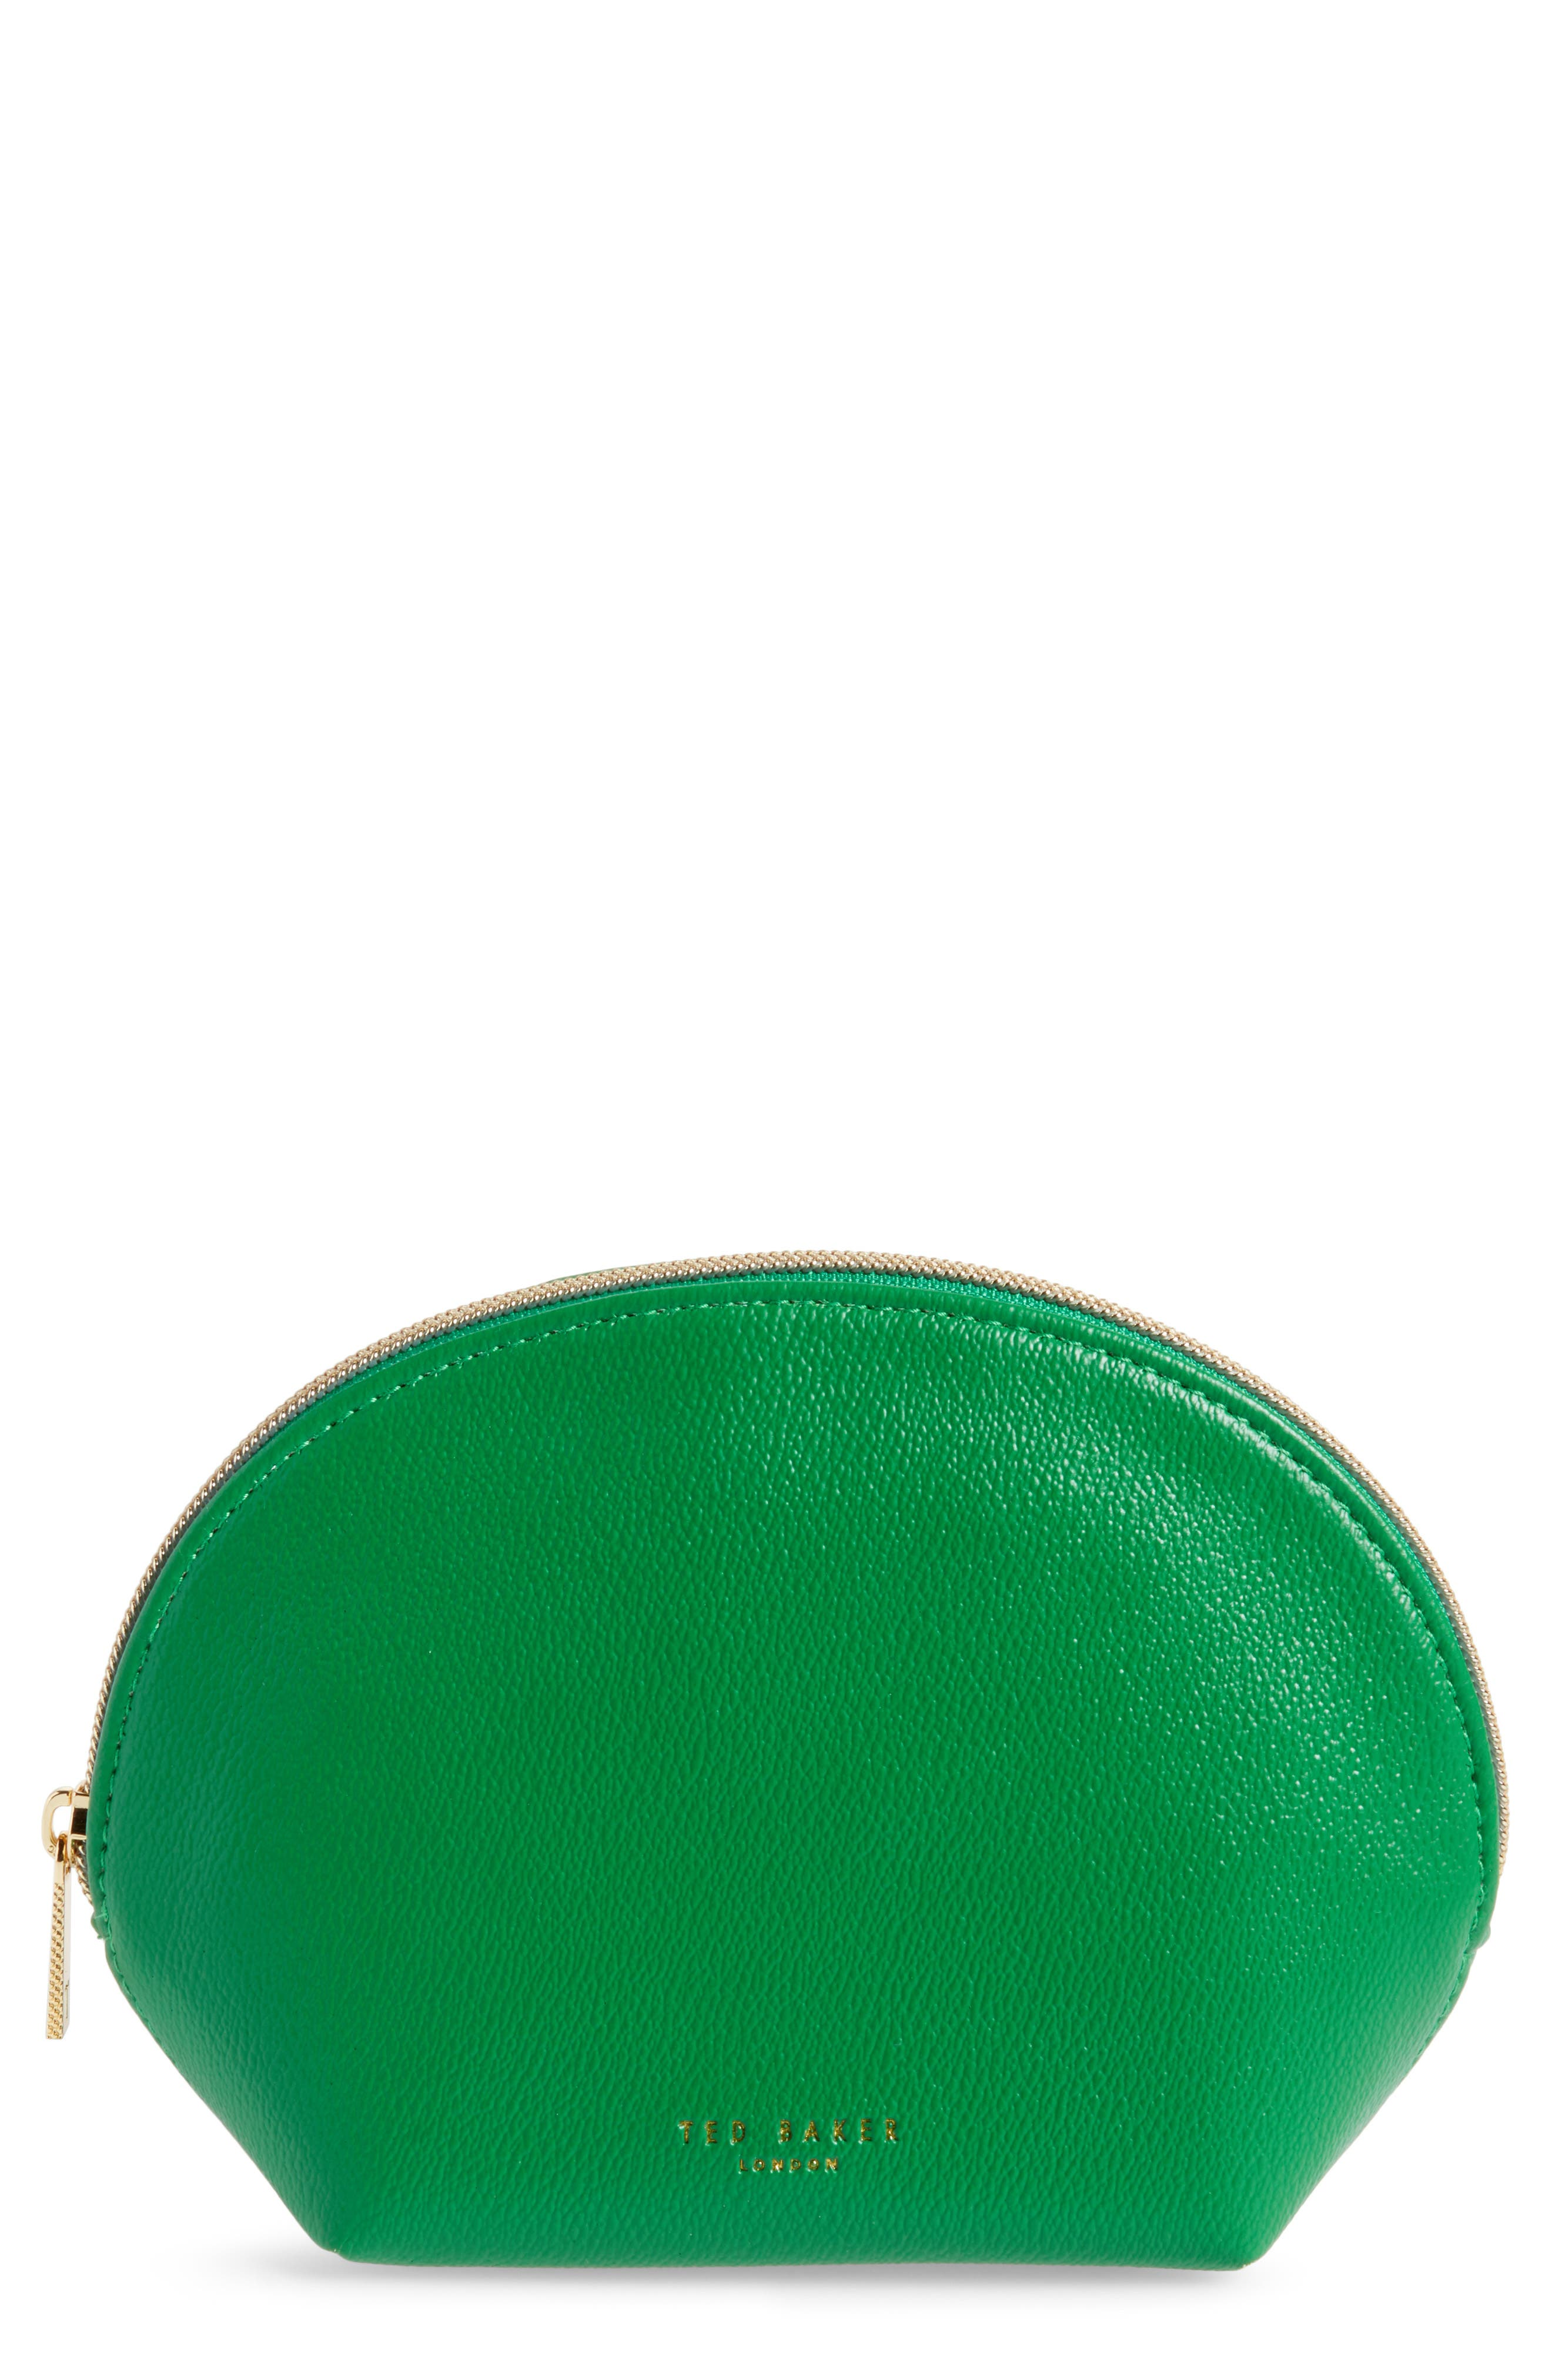 Faux Leather Zip Pouch - Green, Bright Green